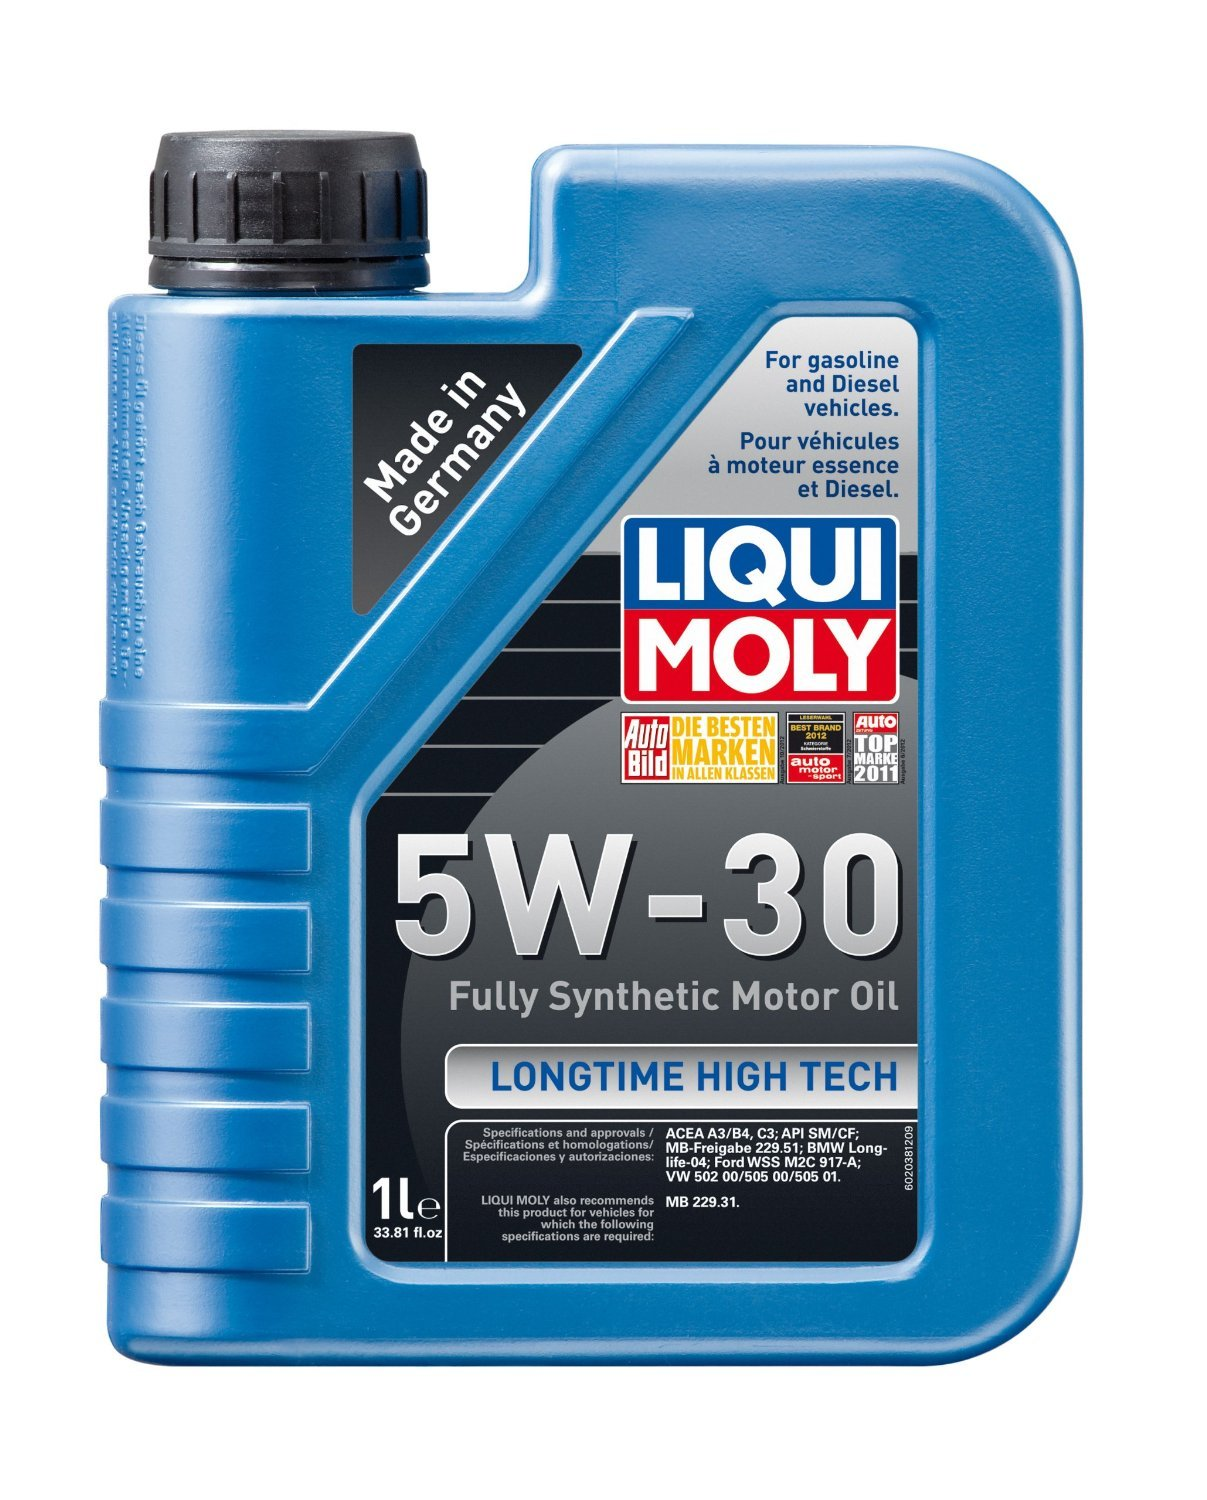 Liqui Moly (2039-4PK) Longtime High Tech 5W-30 Synthetic Motor Oil - 5 Liter, (Pack of 4)